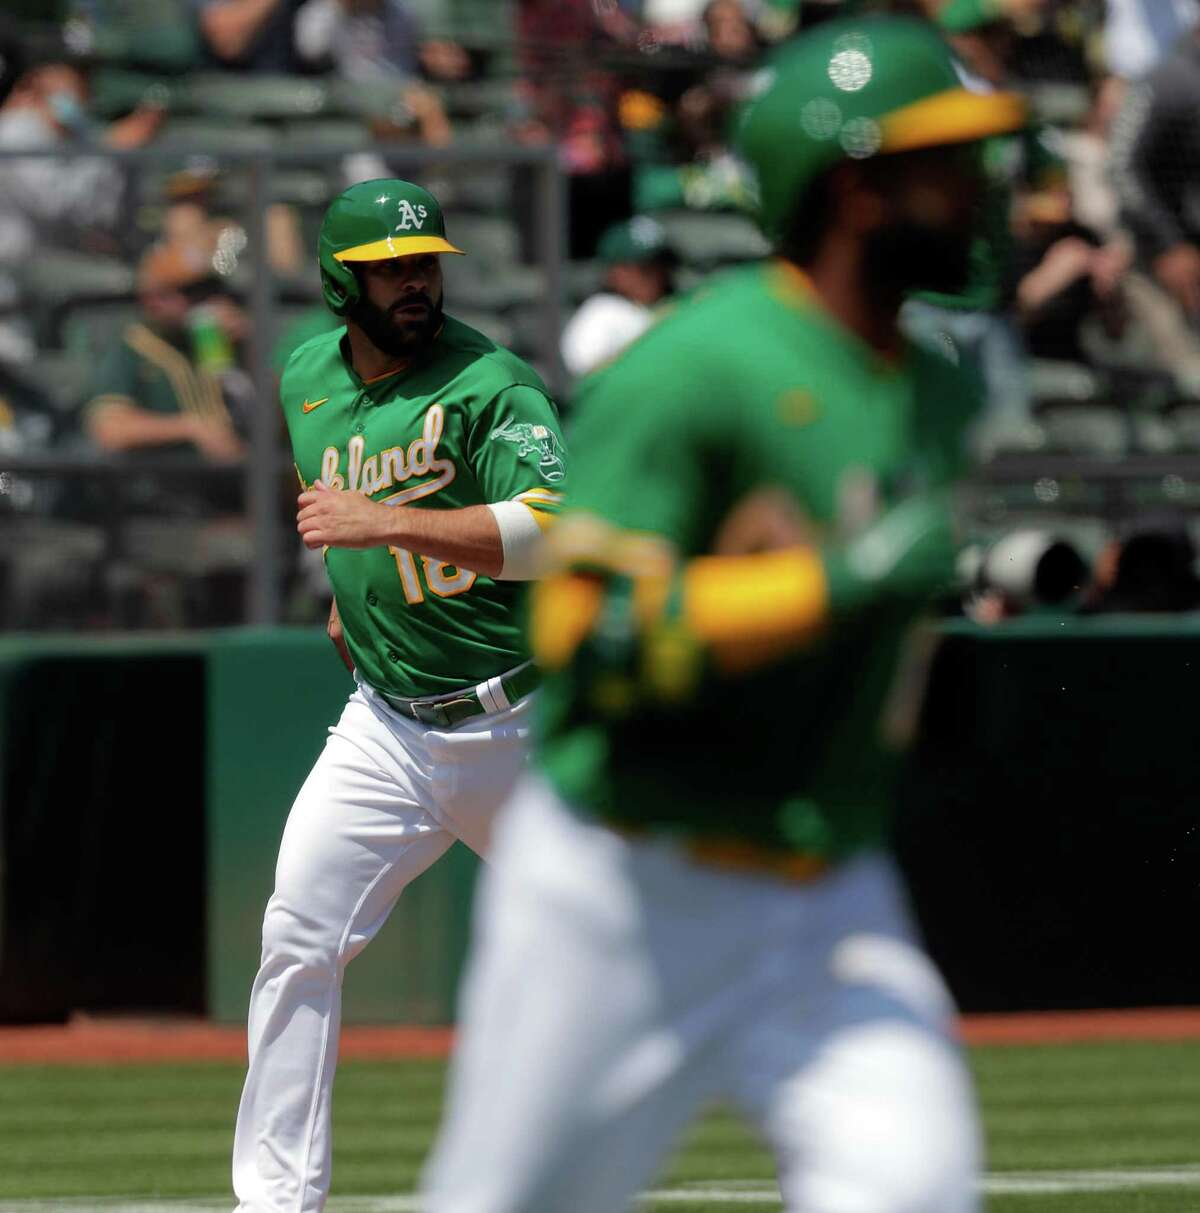 Mitch Moreland (18) scores on a hit by Elvis Andrus (17) in the second inning as the Oakland Athletics played the Minnesota Twins at the Oakland Coliseum in Oakland, Calif., on Wednesday, April 21, 2021.